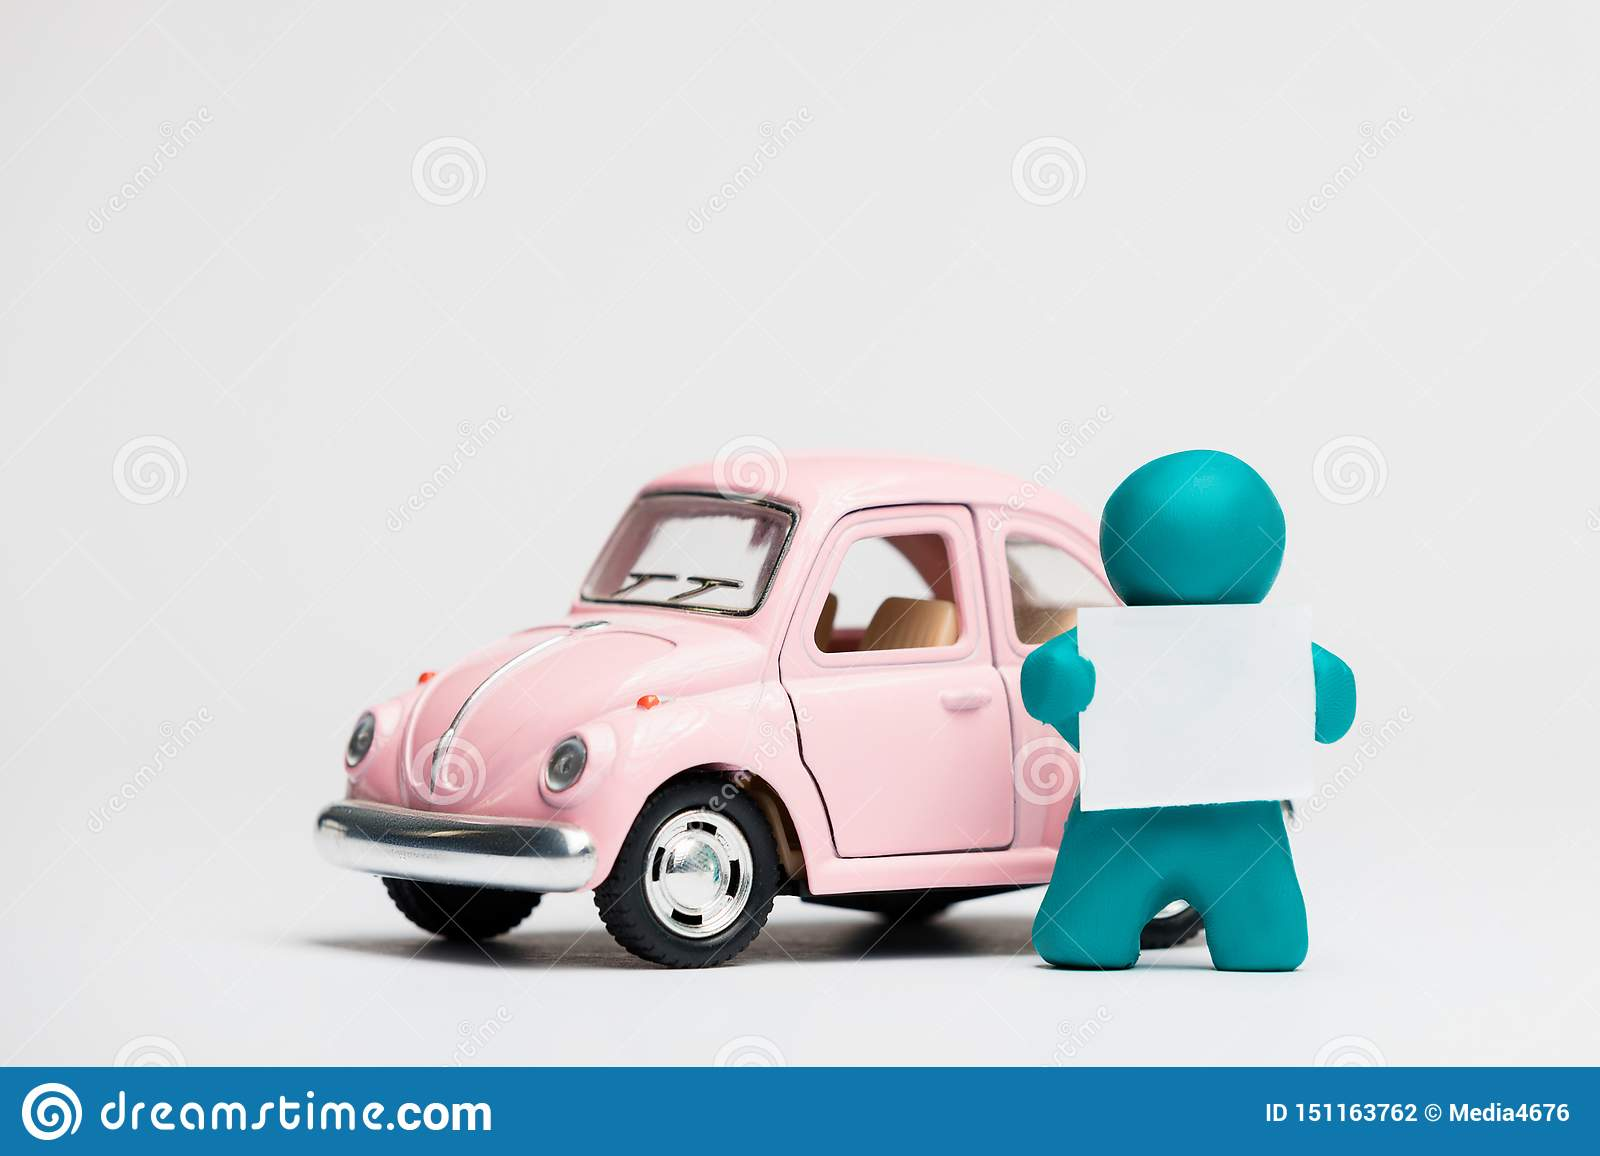 A man made from plasticine holding a blank sheet of paper next to a car on white background